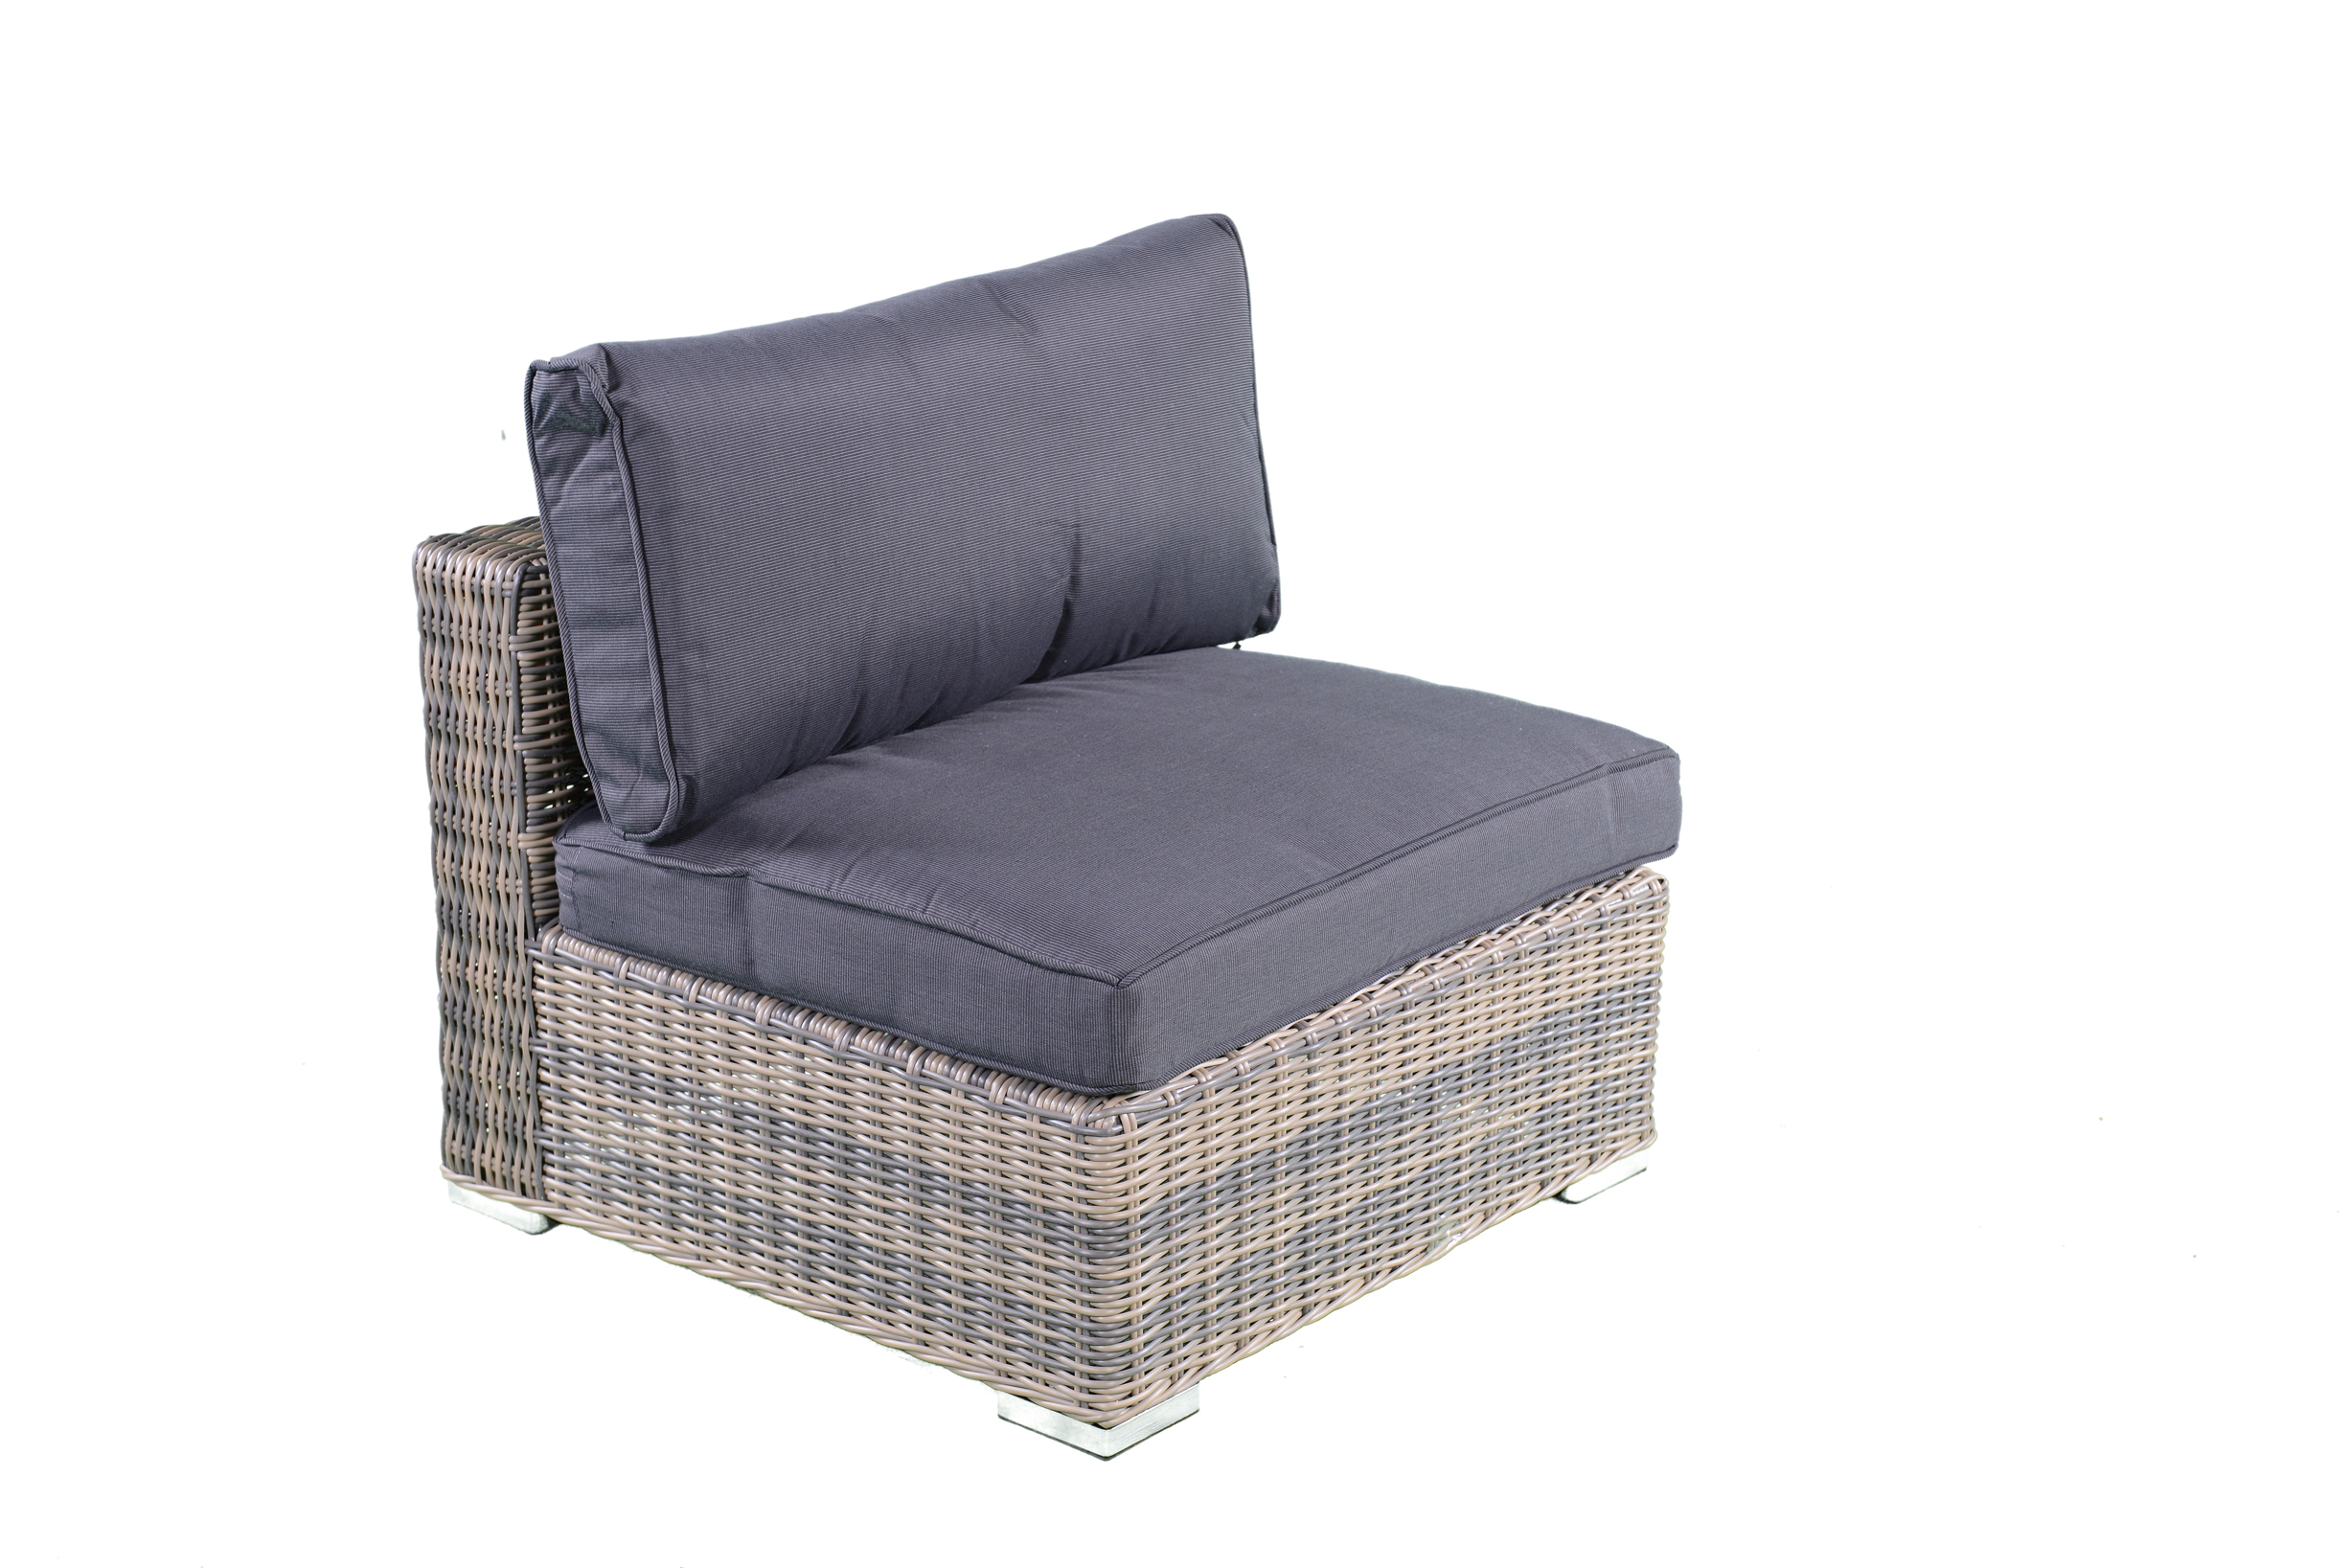 https://www.firstfurniture.co.uk/pub/media/catalog/product/d/s/dsc_7393_1.jpg